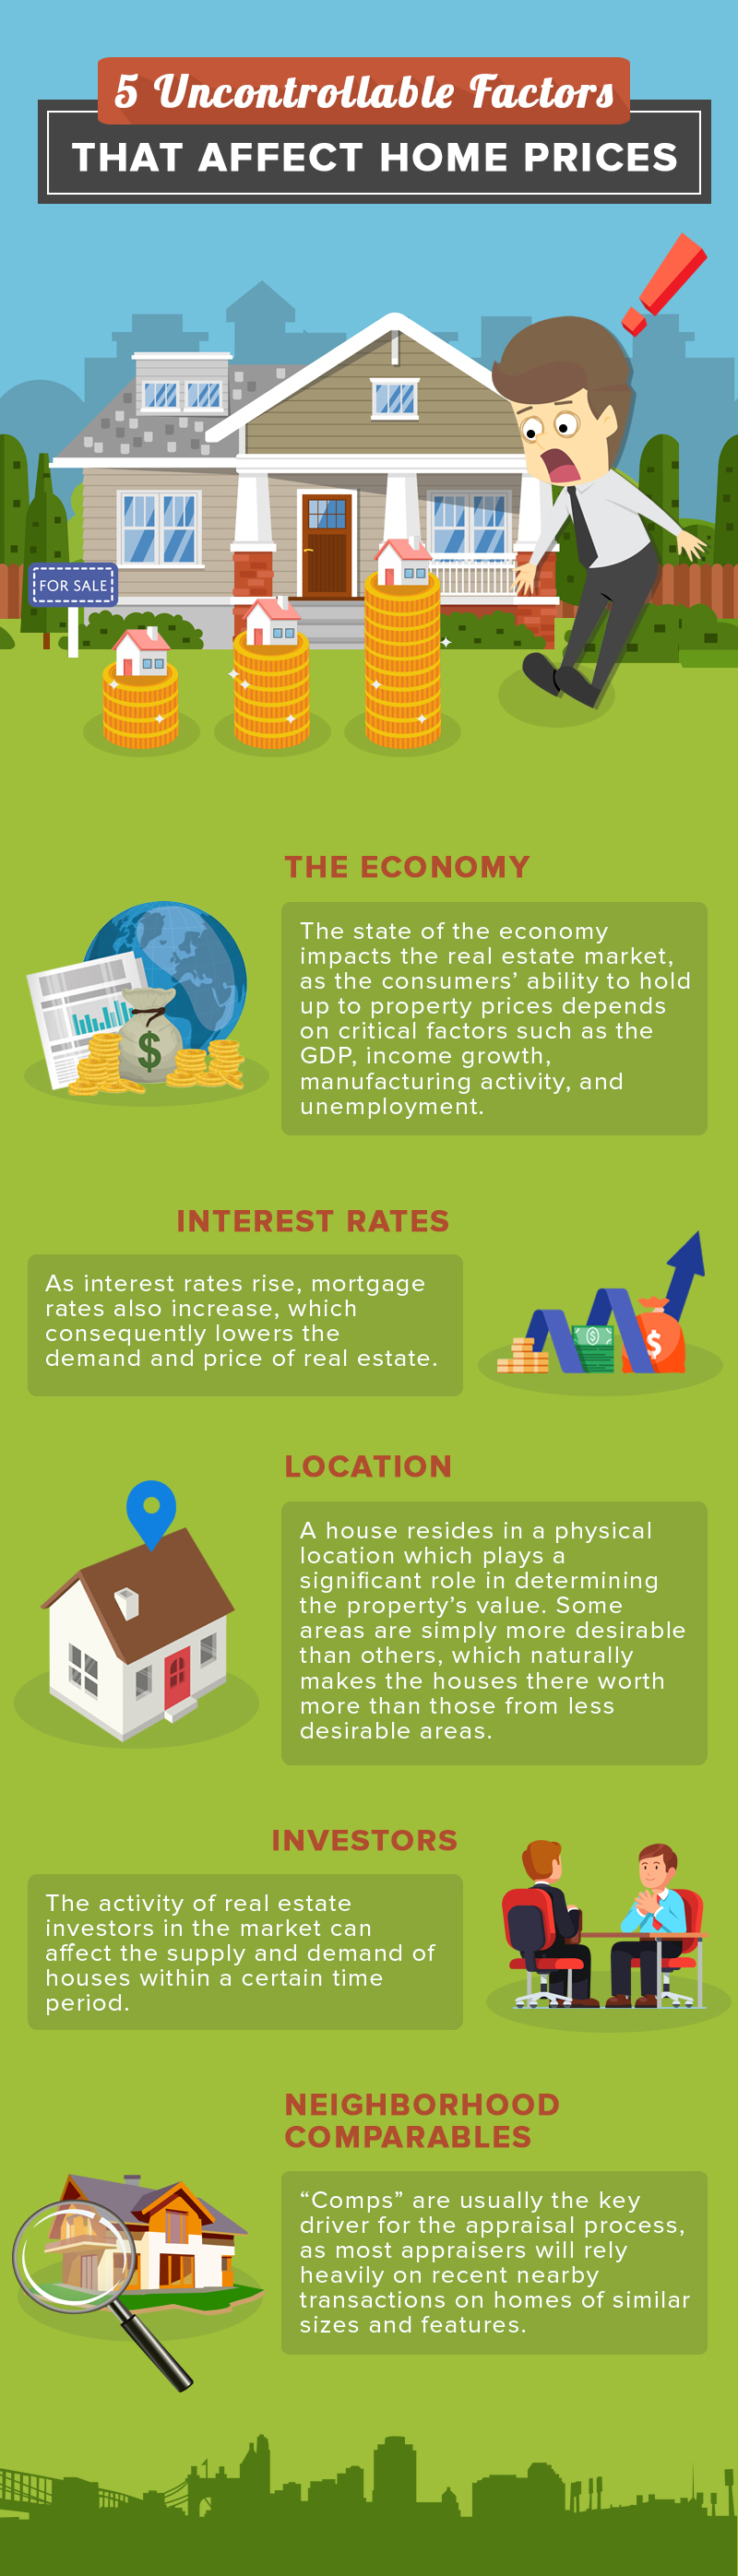 5 Uncontrollable Factors That Affect Home Prices.jpg